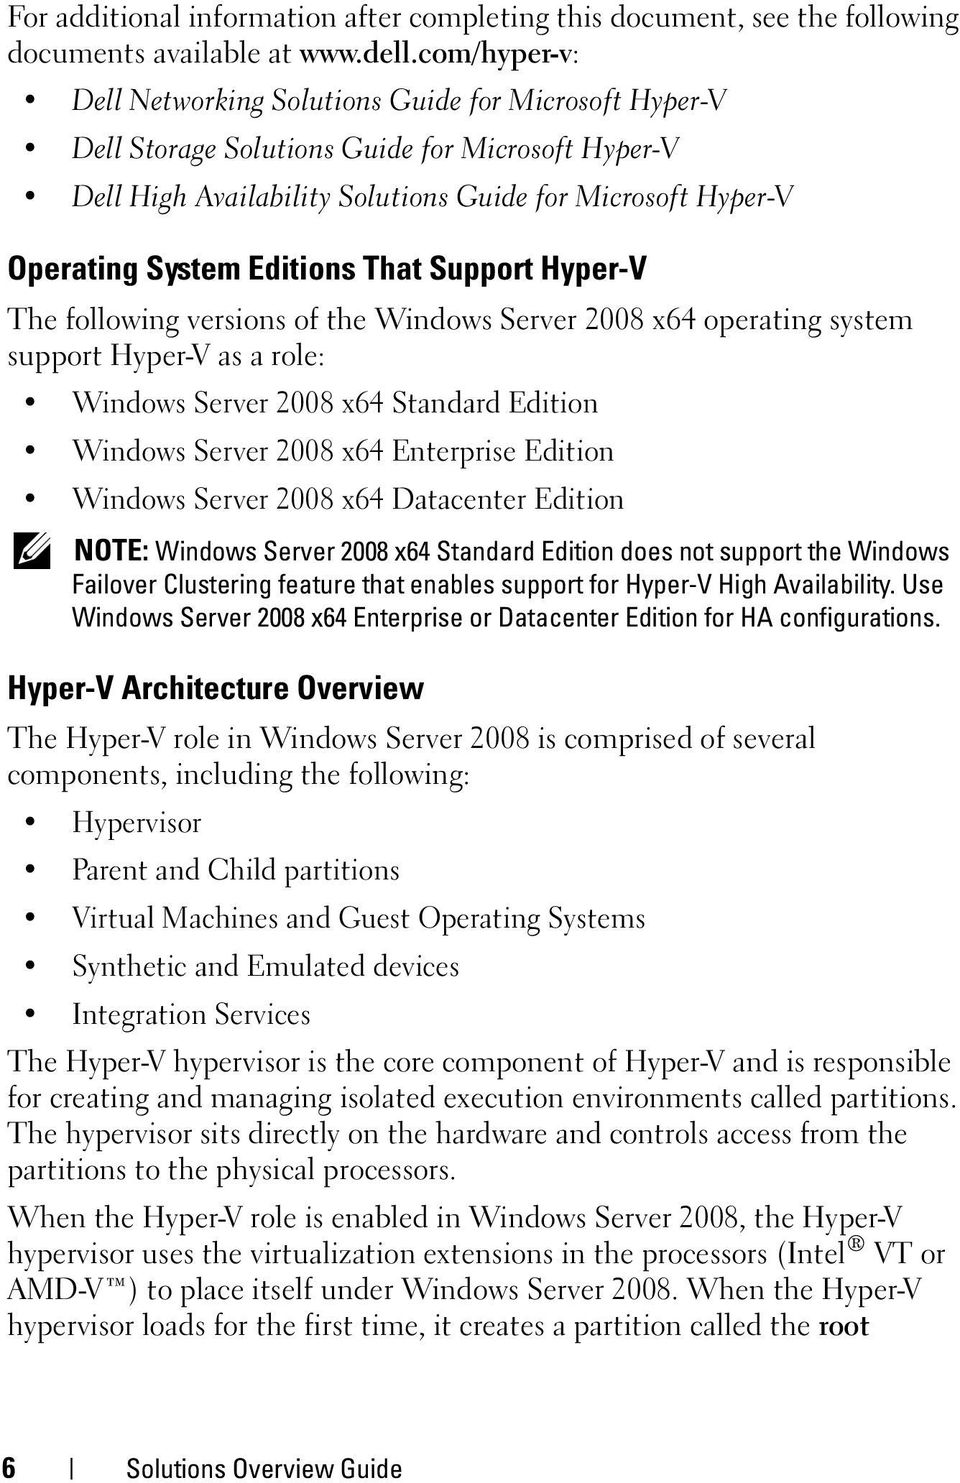 Editions That Support Hyper-V The following versions of the Windows Server 2008 x64 operating system support Hyper-V as a role: Windows Server 2008 x64 Standard Edition Windows Server 2008 x64